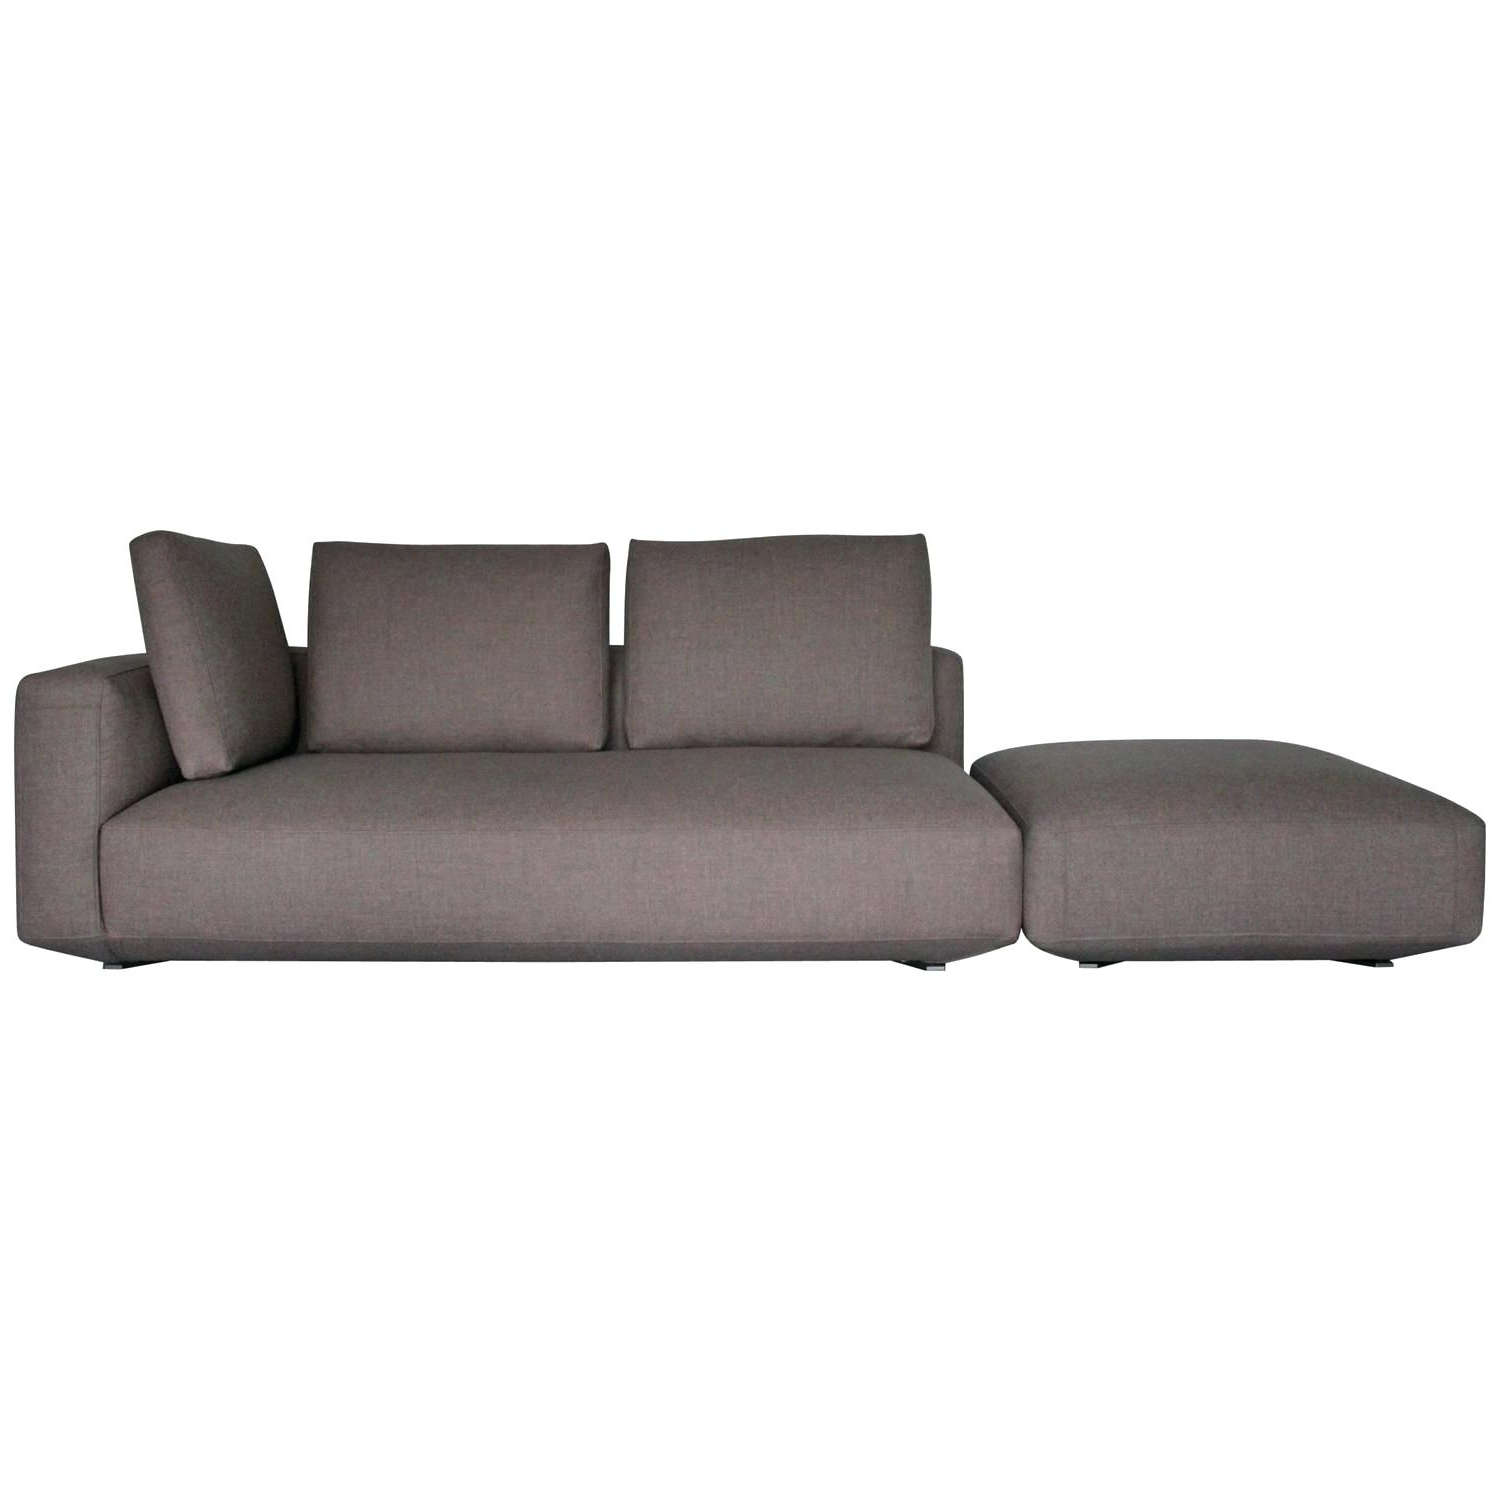 Trendy Sofa Ottoman Ottomans Beds Coffee Table Chaise With Storage Pertaining To Sofa Bed Chaises (View 12 of 15)